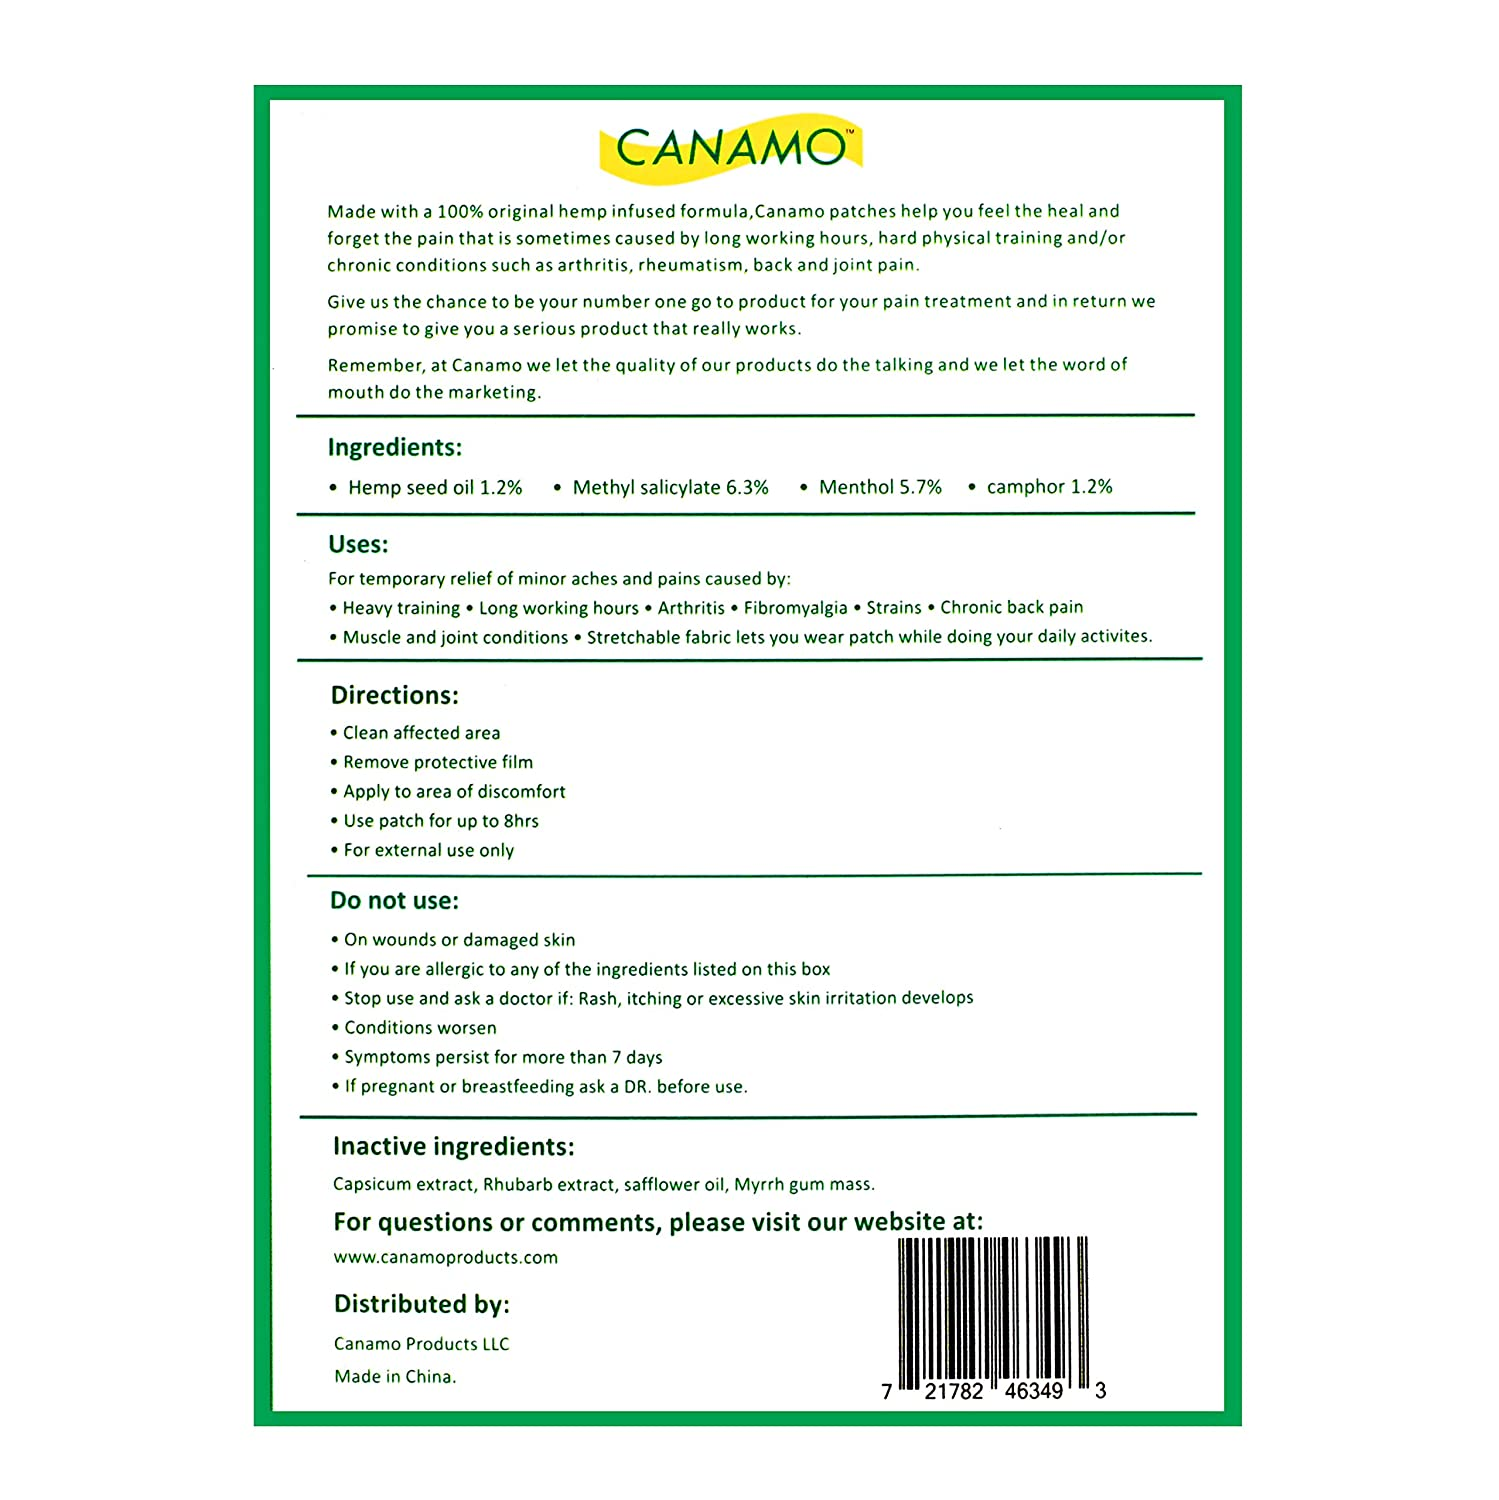 CANAMO Pain Relieving Patches with Hemp Oil for Arthritis, Back Pain, Joint  and Muscle Pain